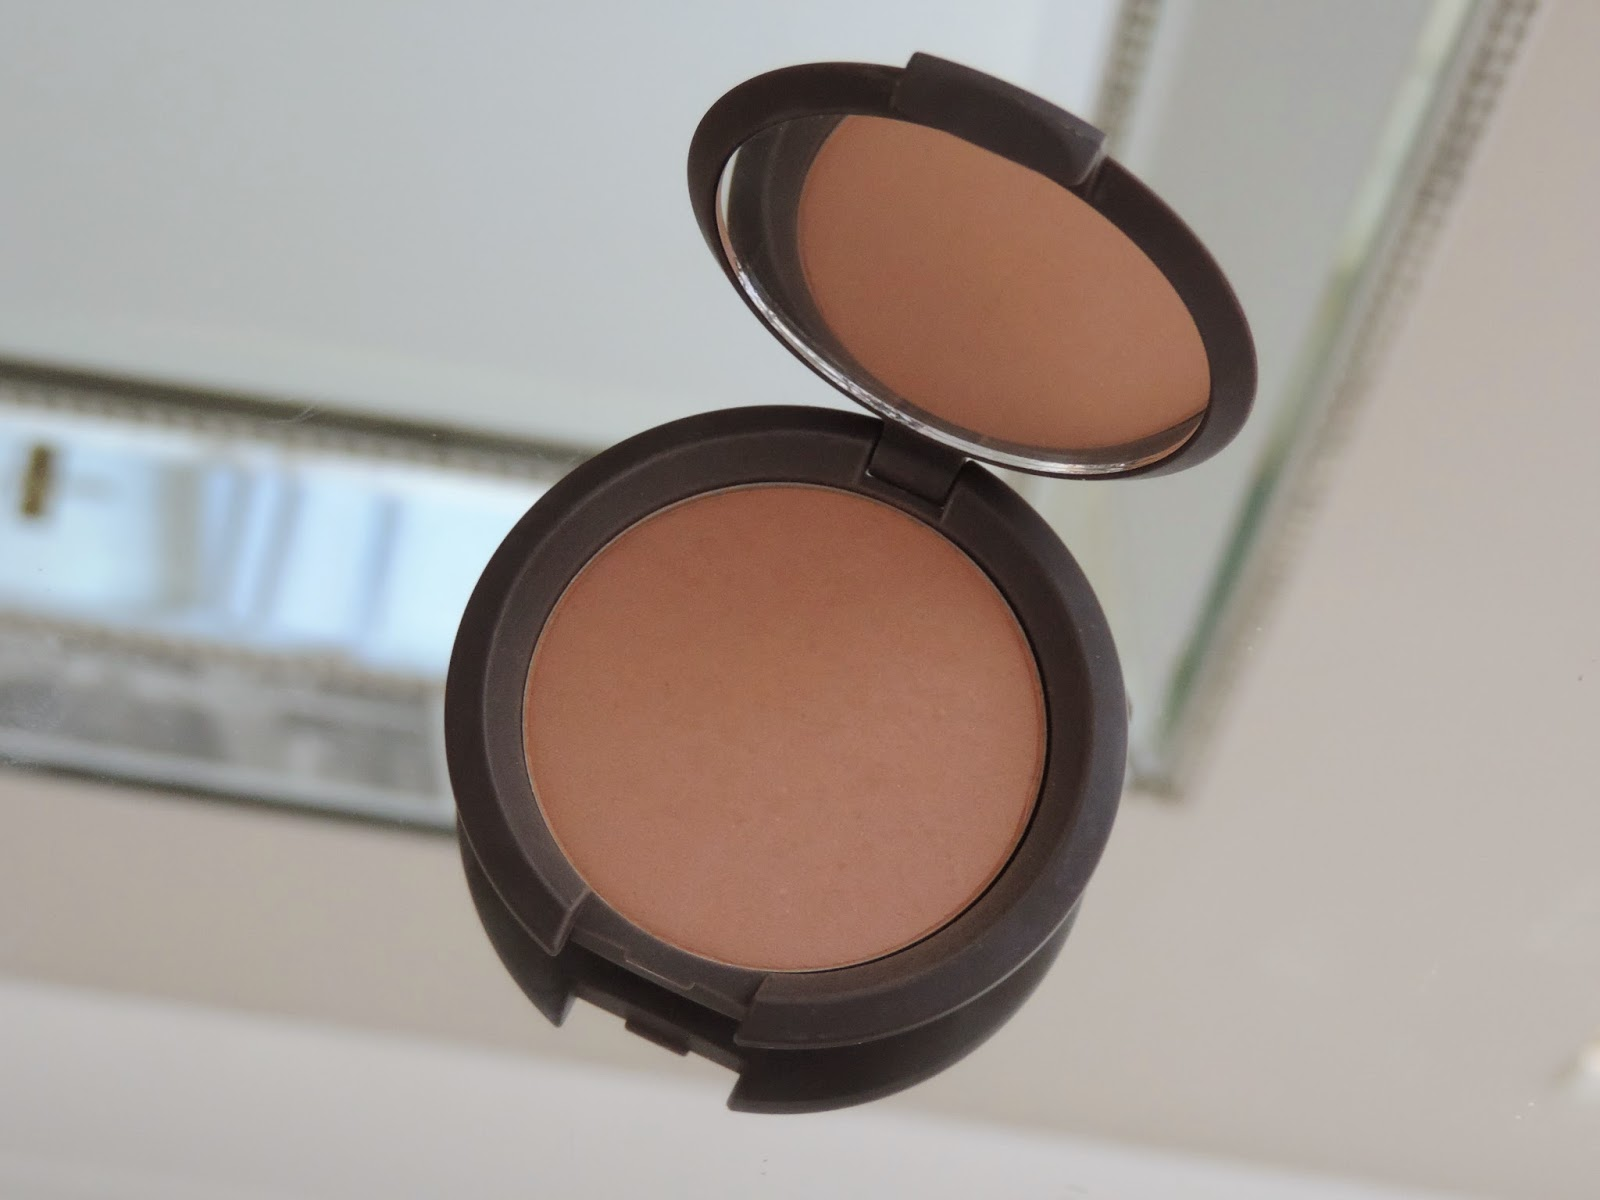 Becca Wild Honey Blush